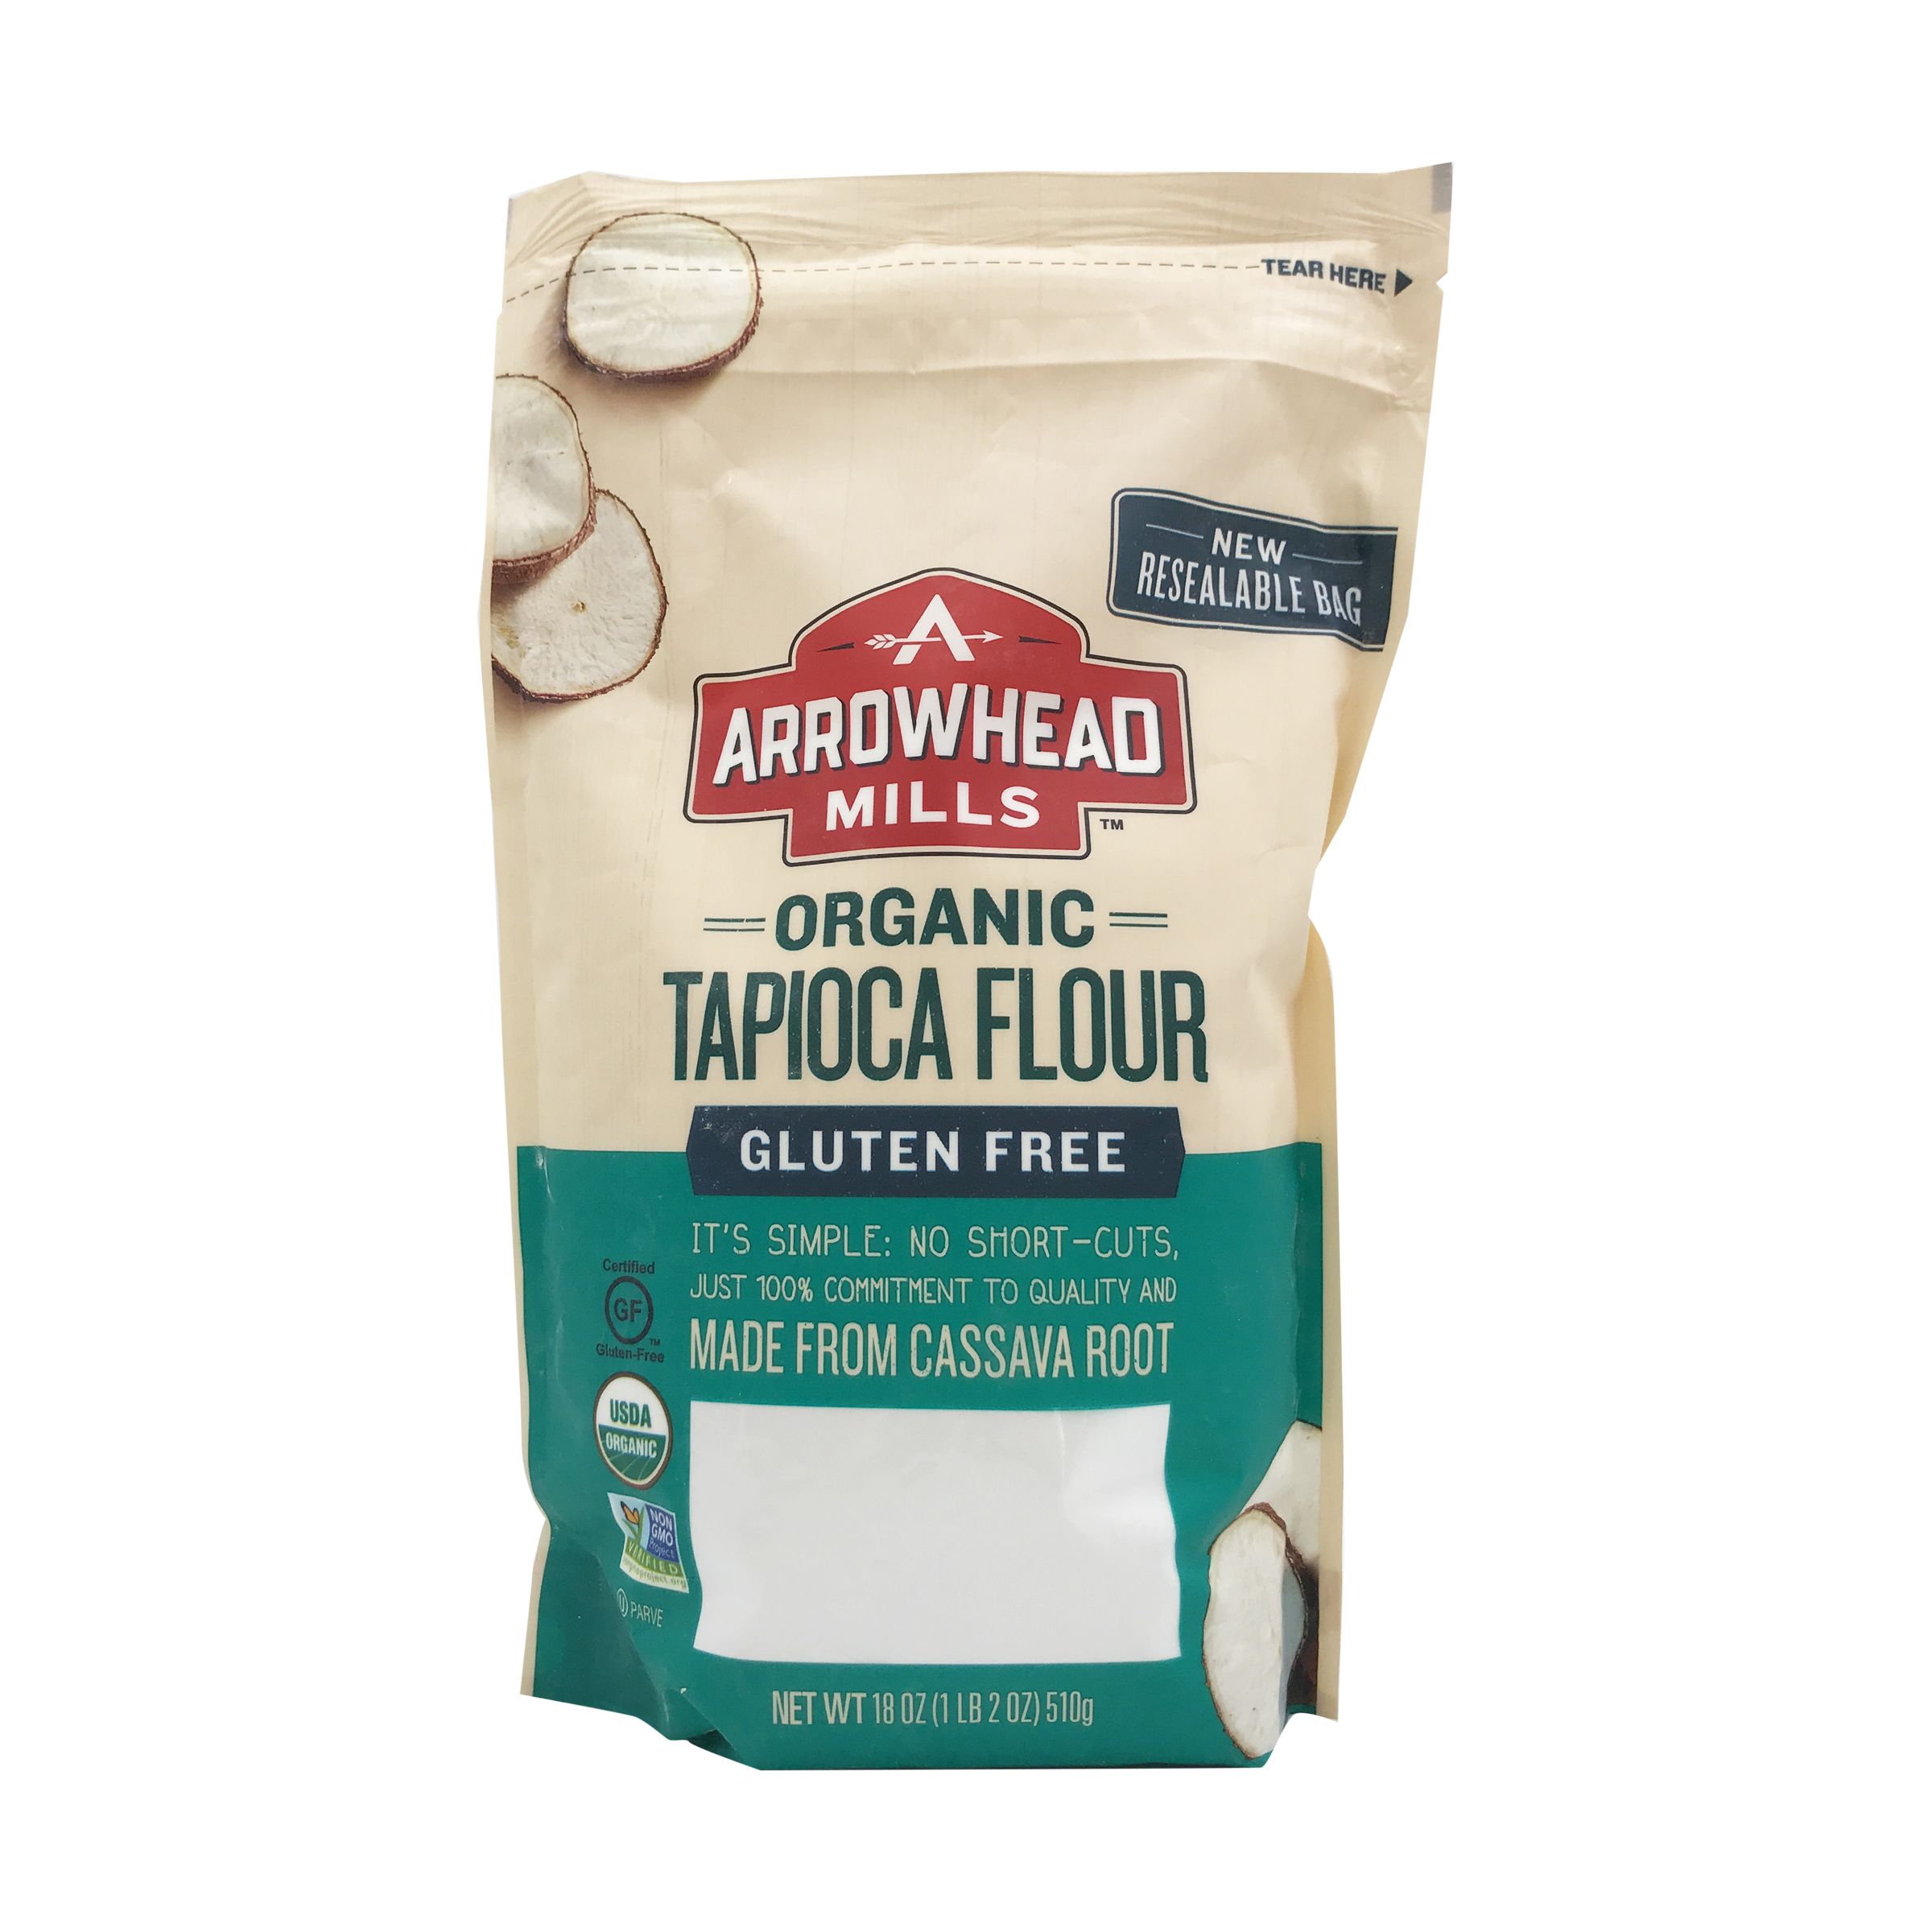 Organic Tapioca Flour, 18 oz, Arrowhead Mills | Whole Foods Market